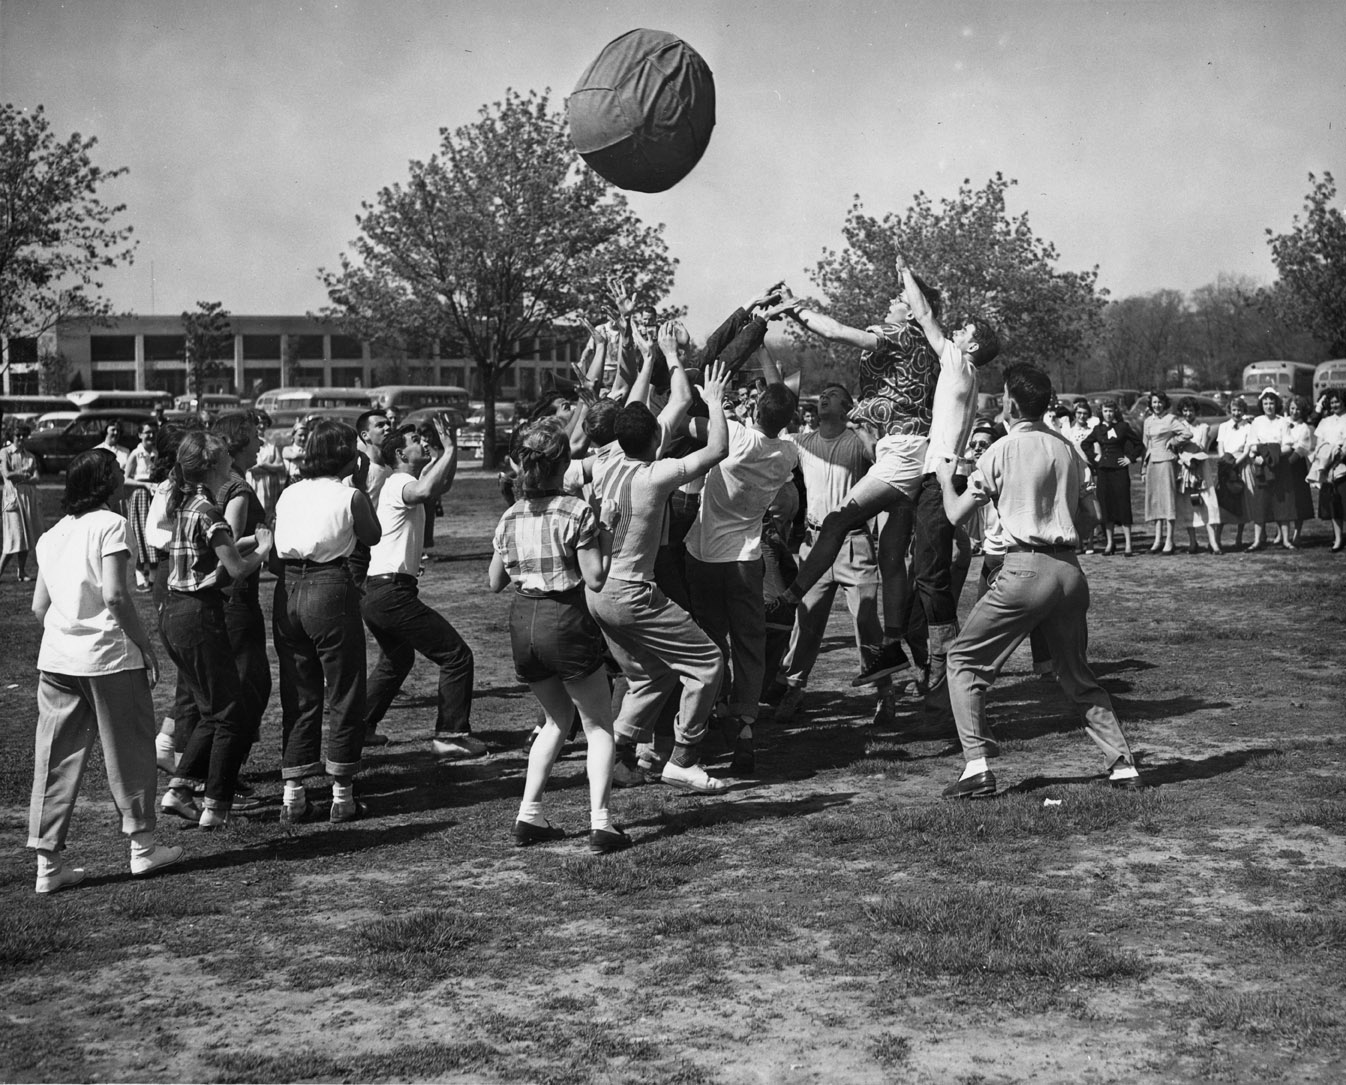 Games on the Lawn near the Stadium, undated